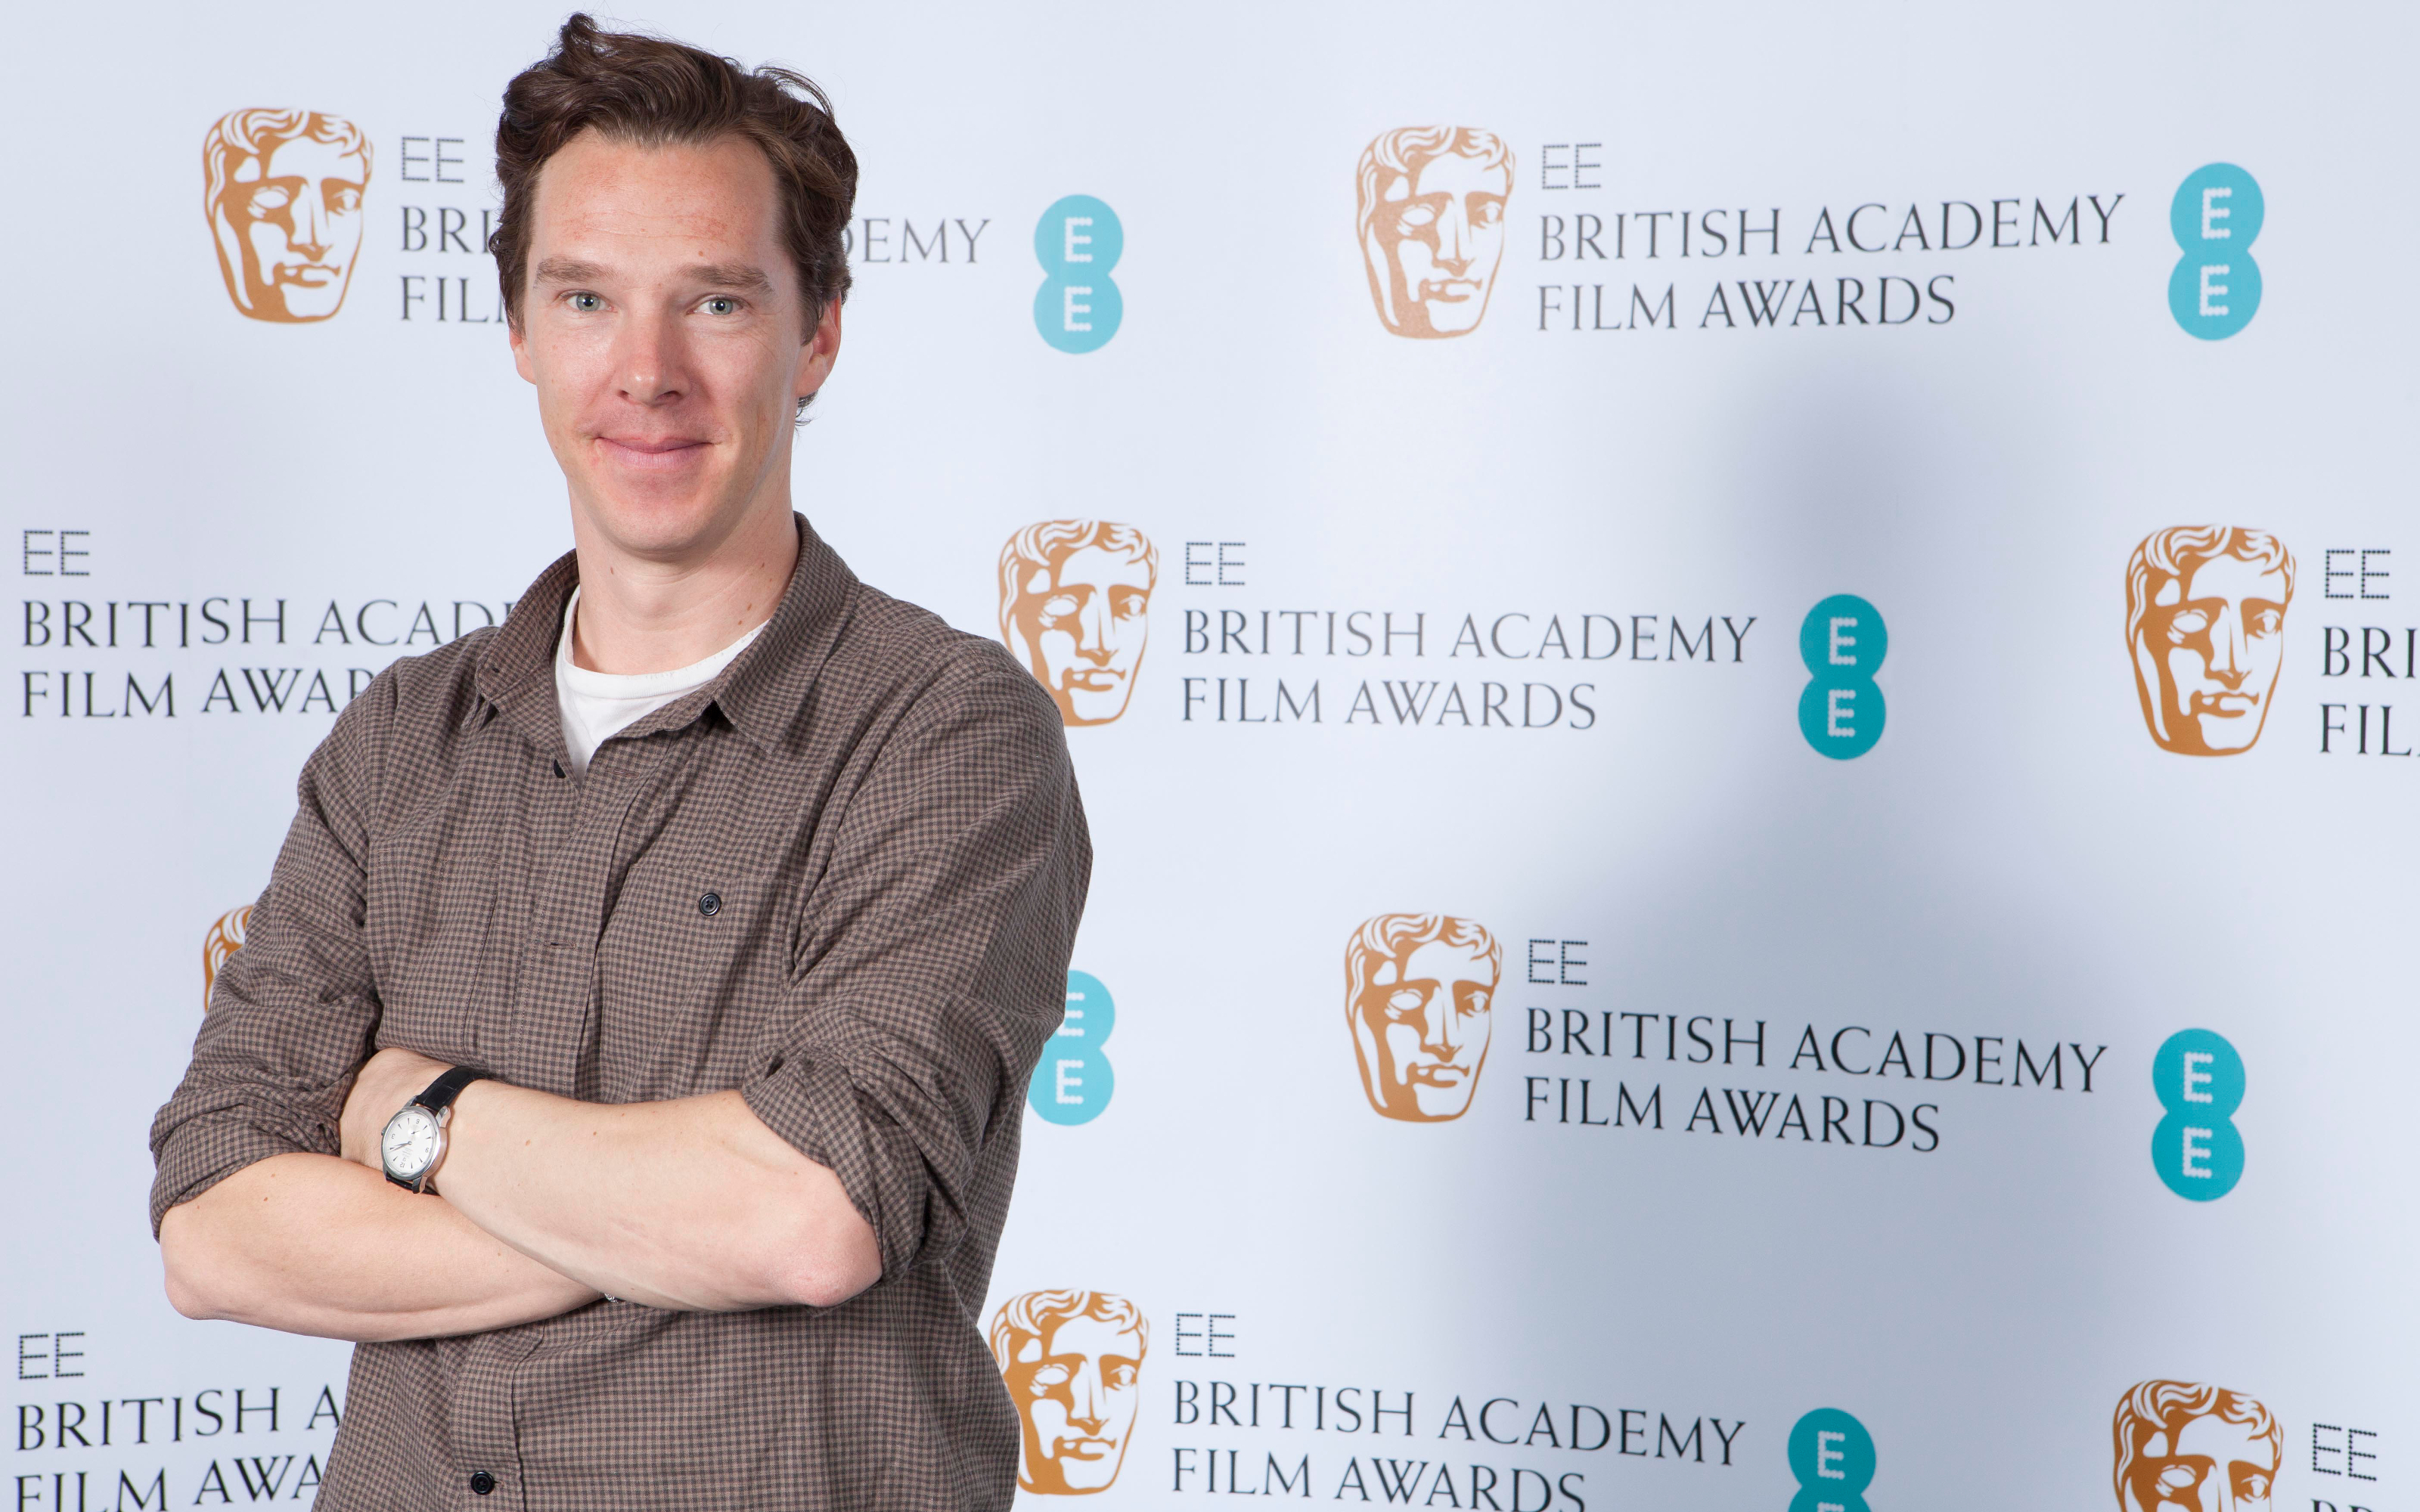 Benedict Cumberbatch Wallpapers, Pictures, Images